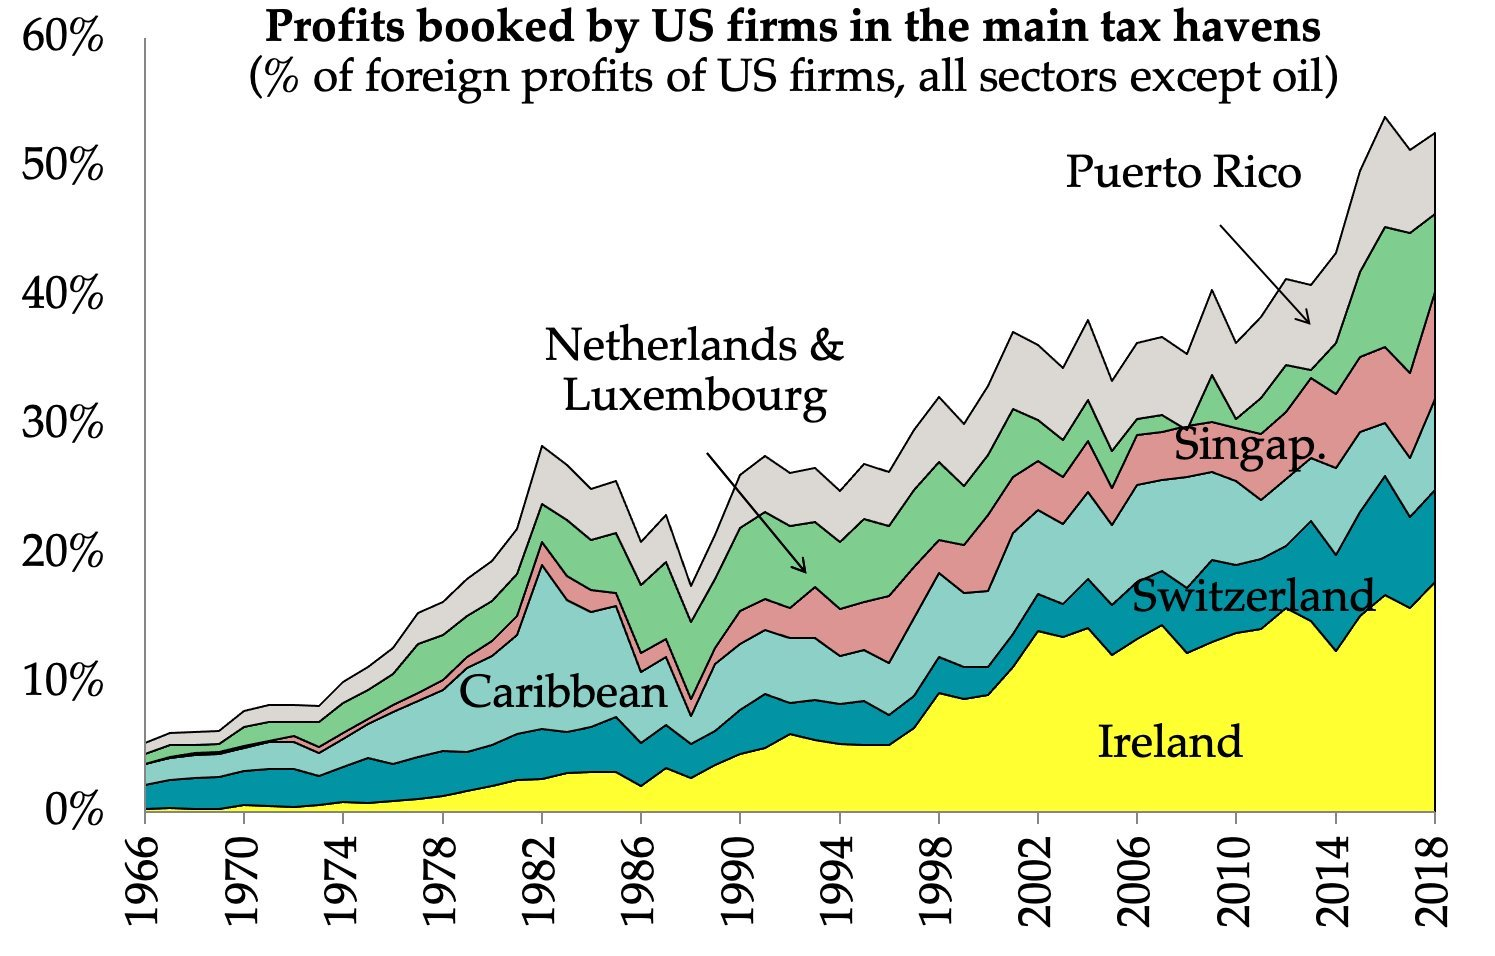 55% of foreign profits by US firms booked in tax havens